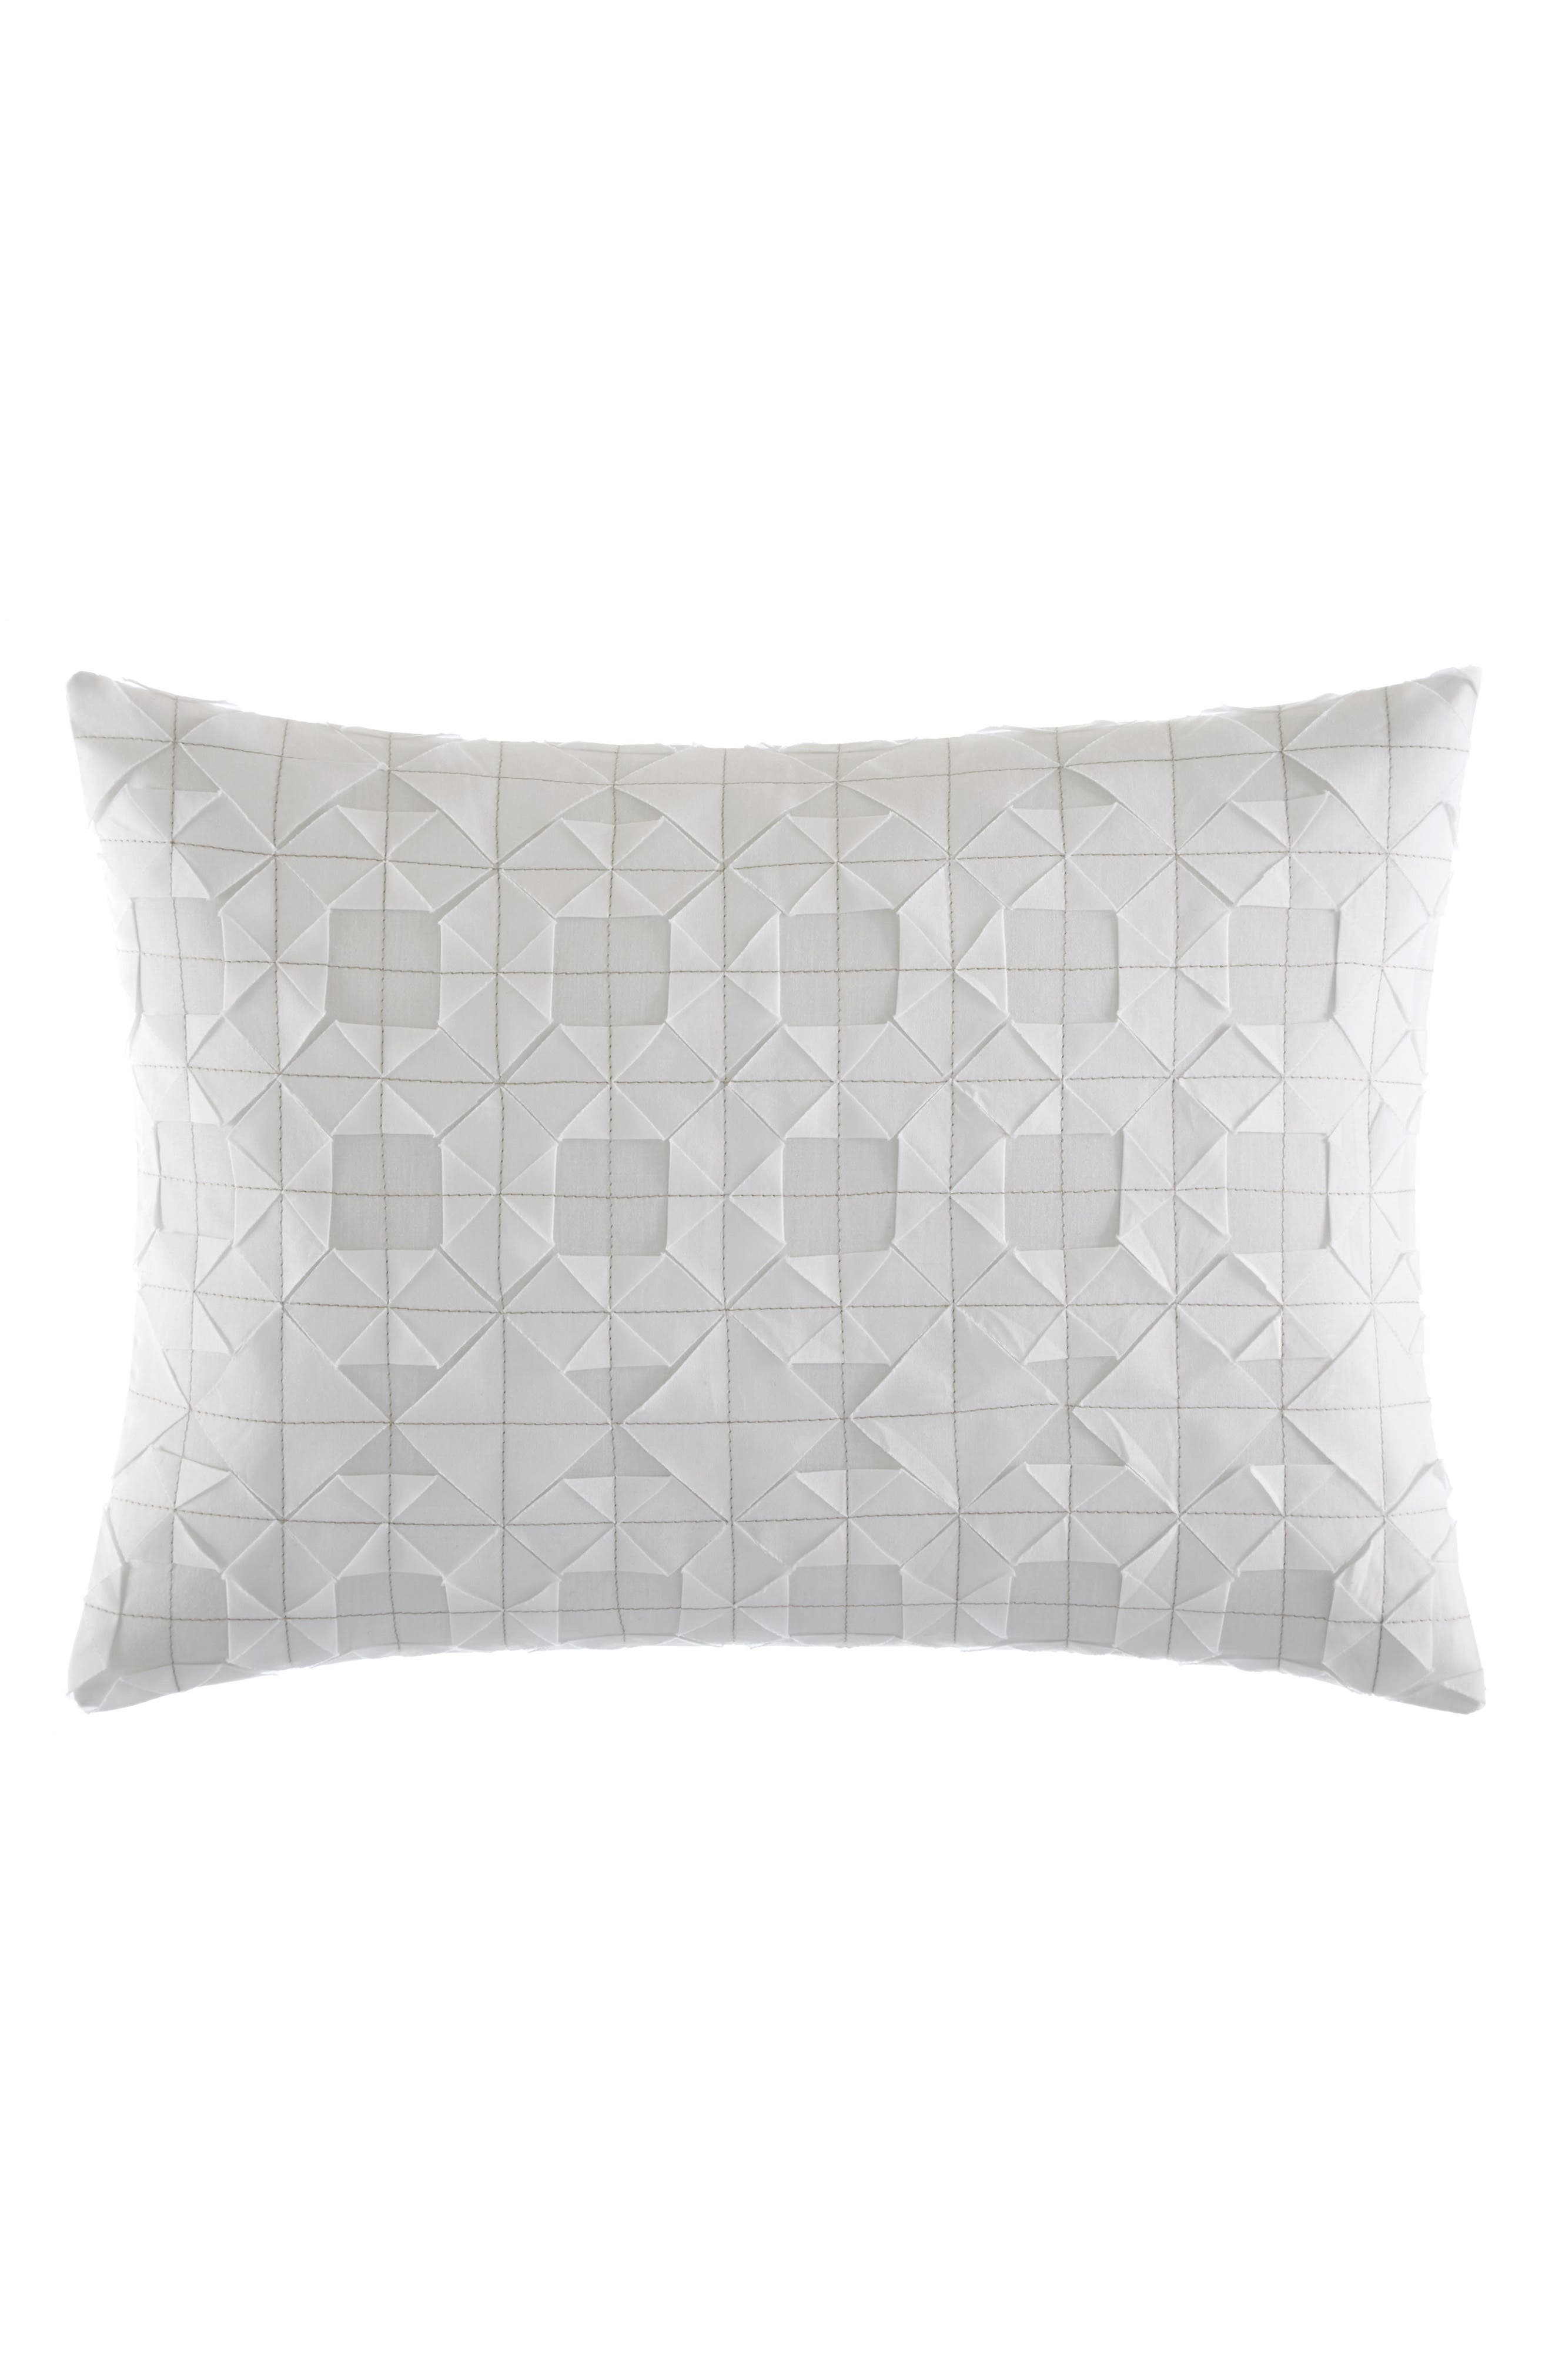 Tuille Origami Stitched Accent Pillow,                         Main,                         color, 115